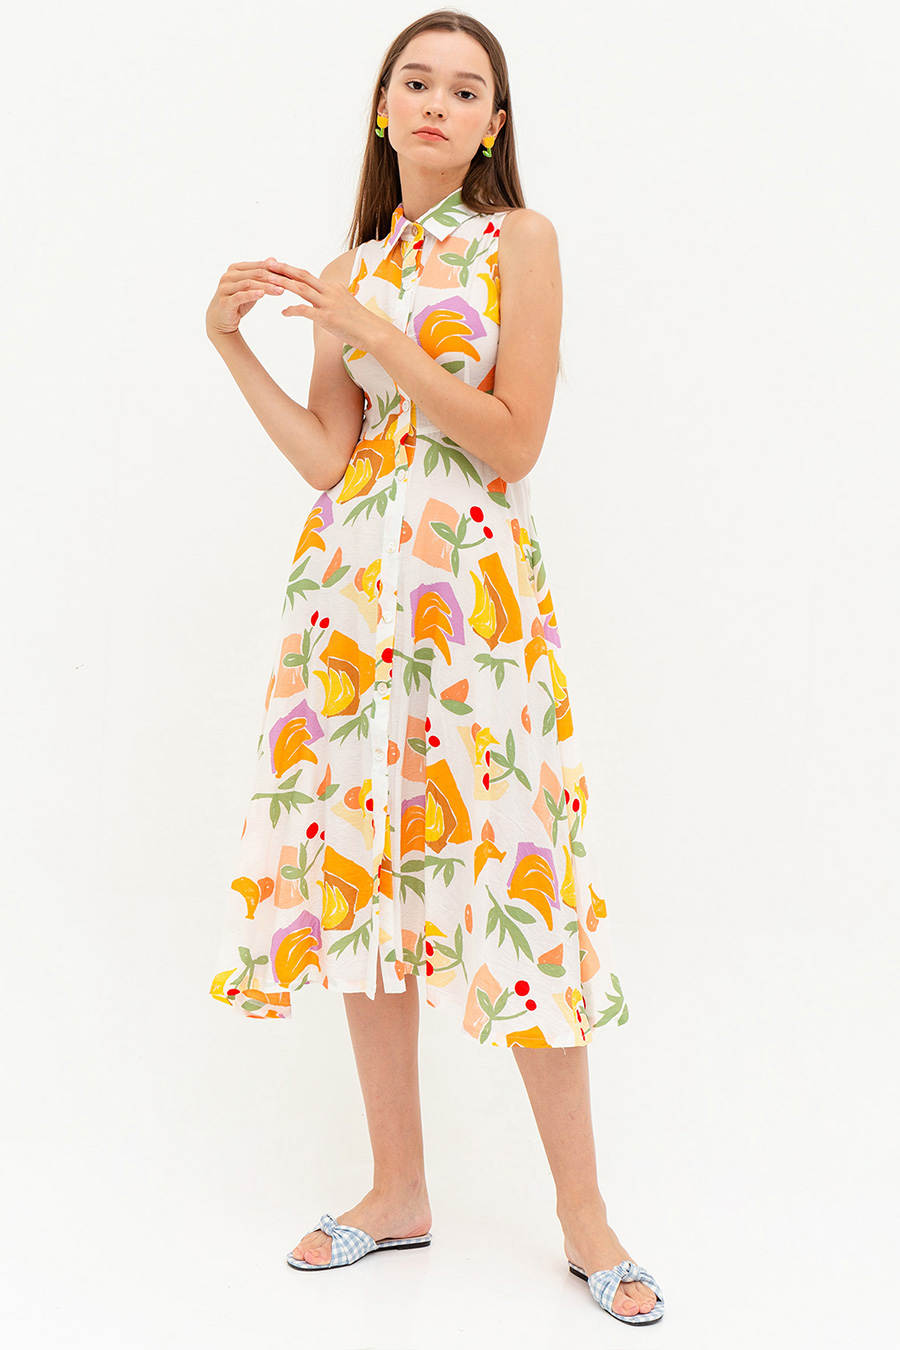 *RESTOCKED* JOSIE DRESS - FRUITIE [BY MODPARADE]